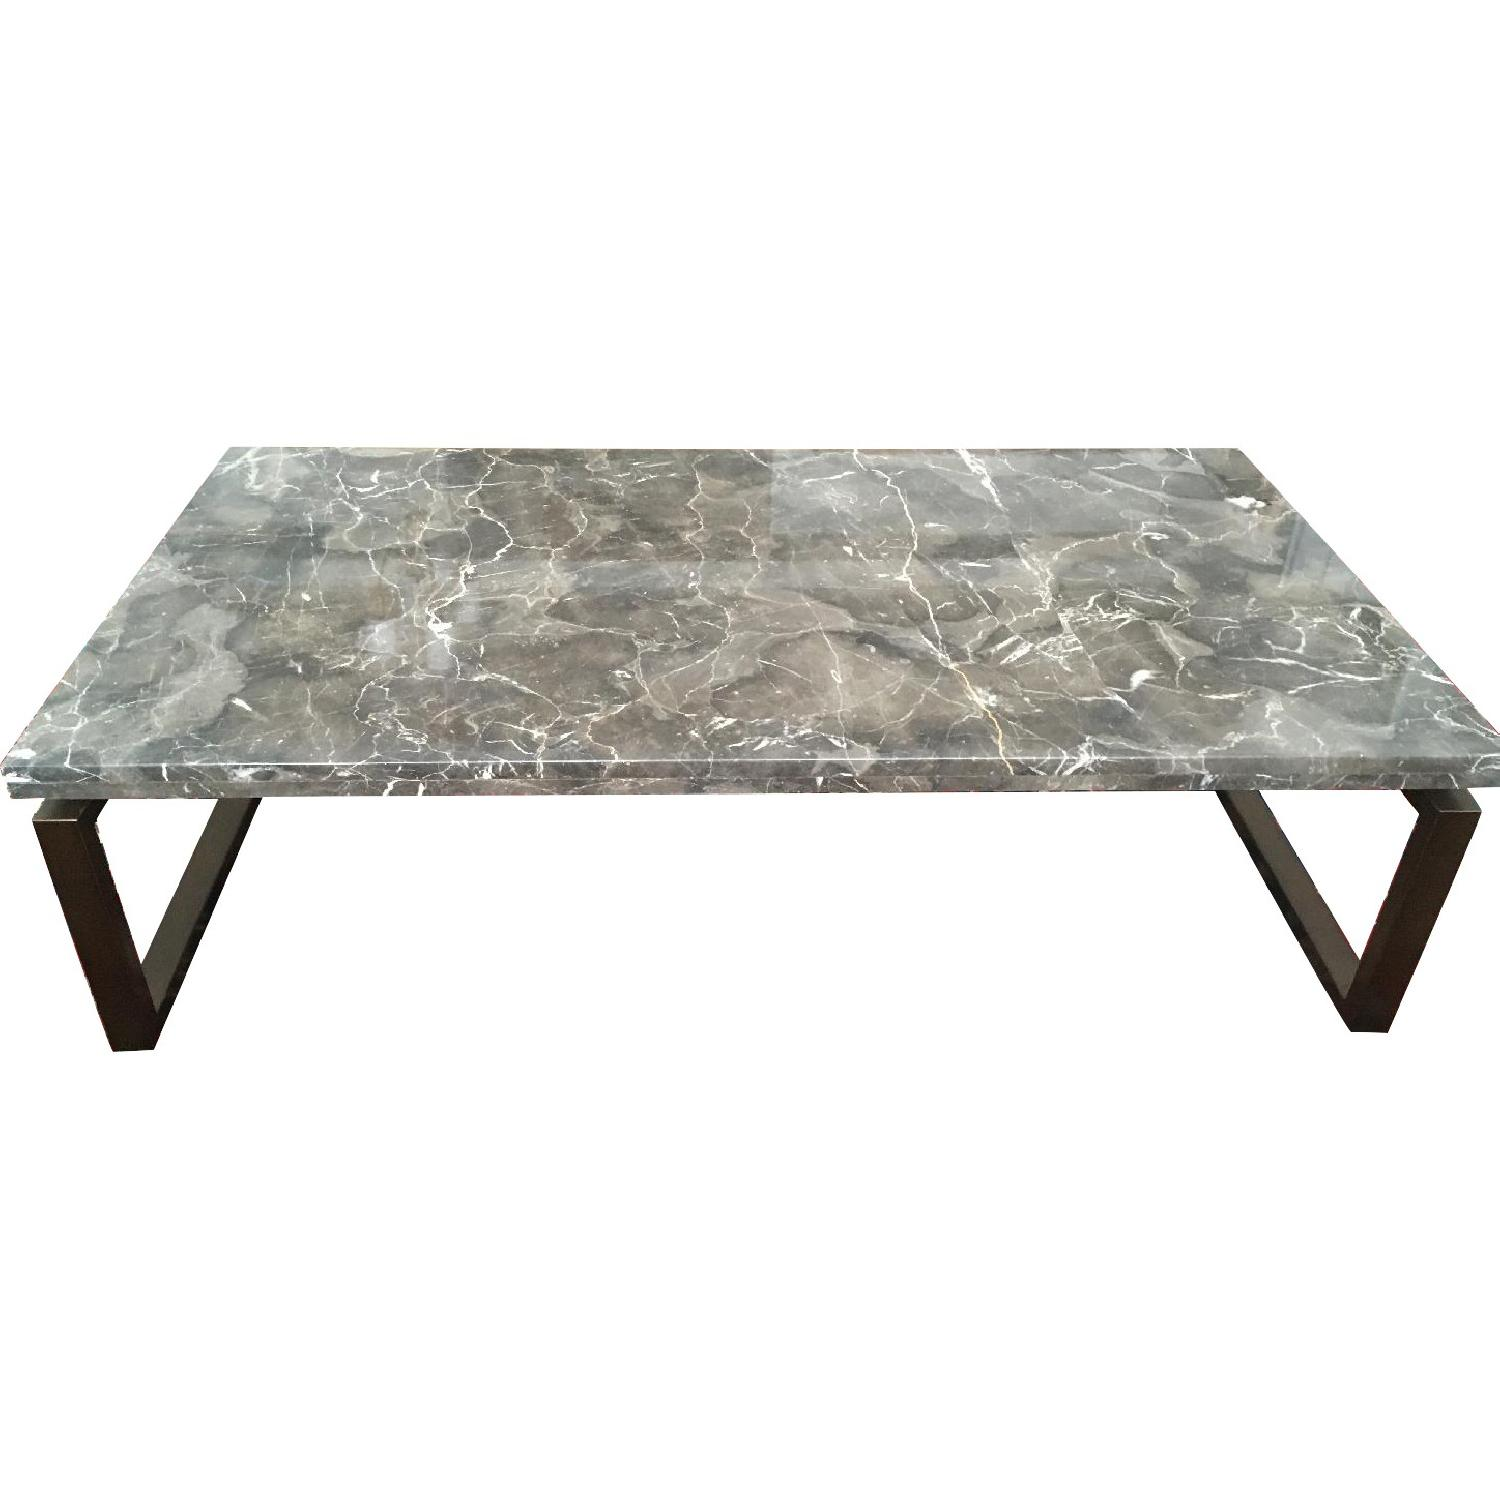 Safavieh Marble Top Cocktail Table - image-0